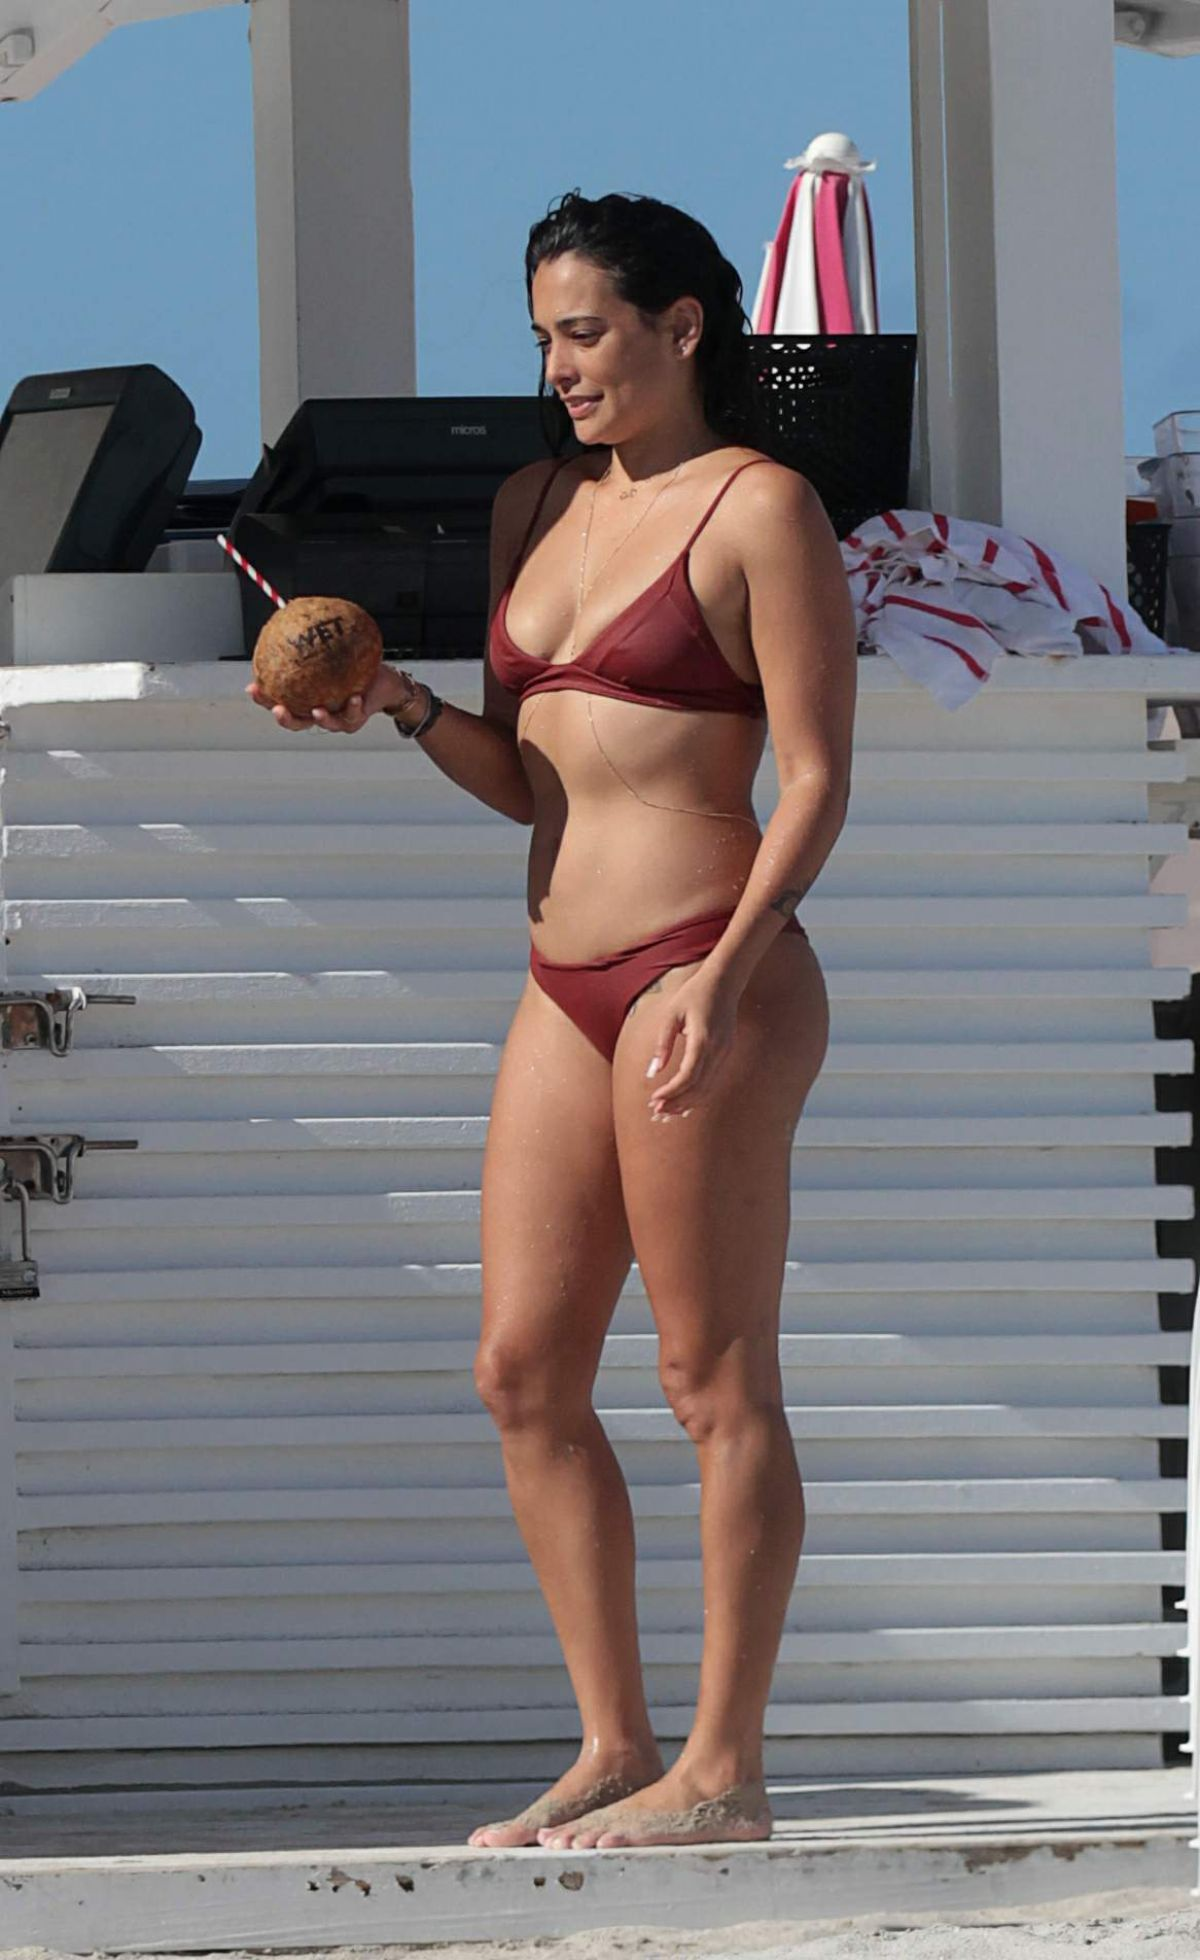 NATALIE MARTINEZ in Bikini on the Beach in Miami 07/05/2017